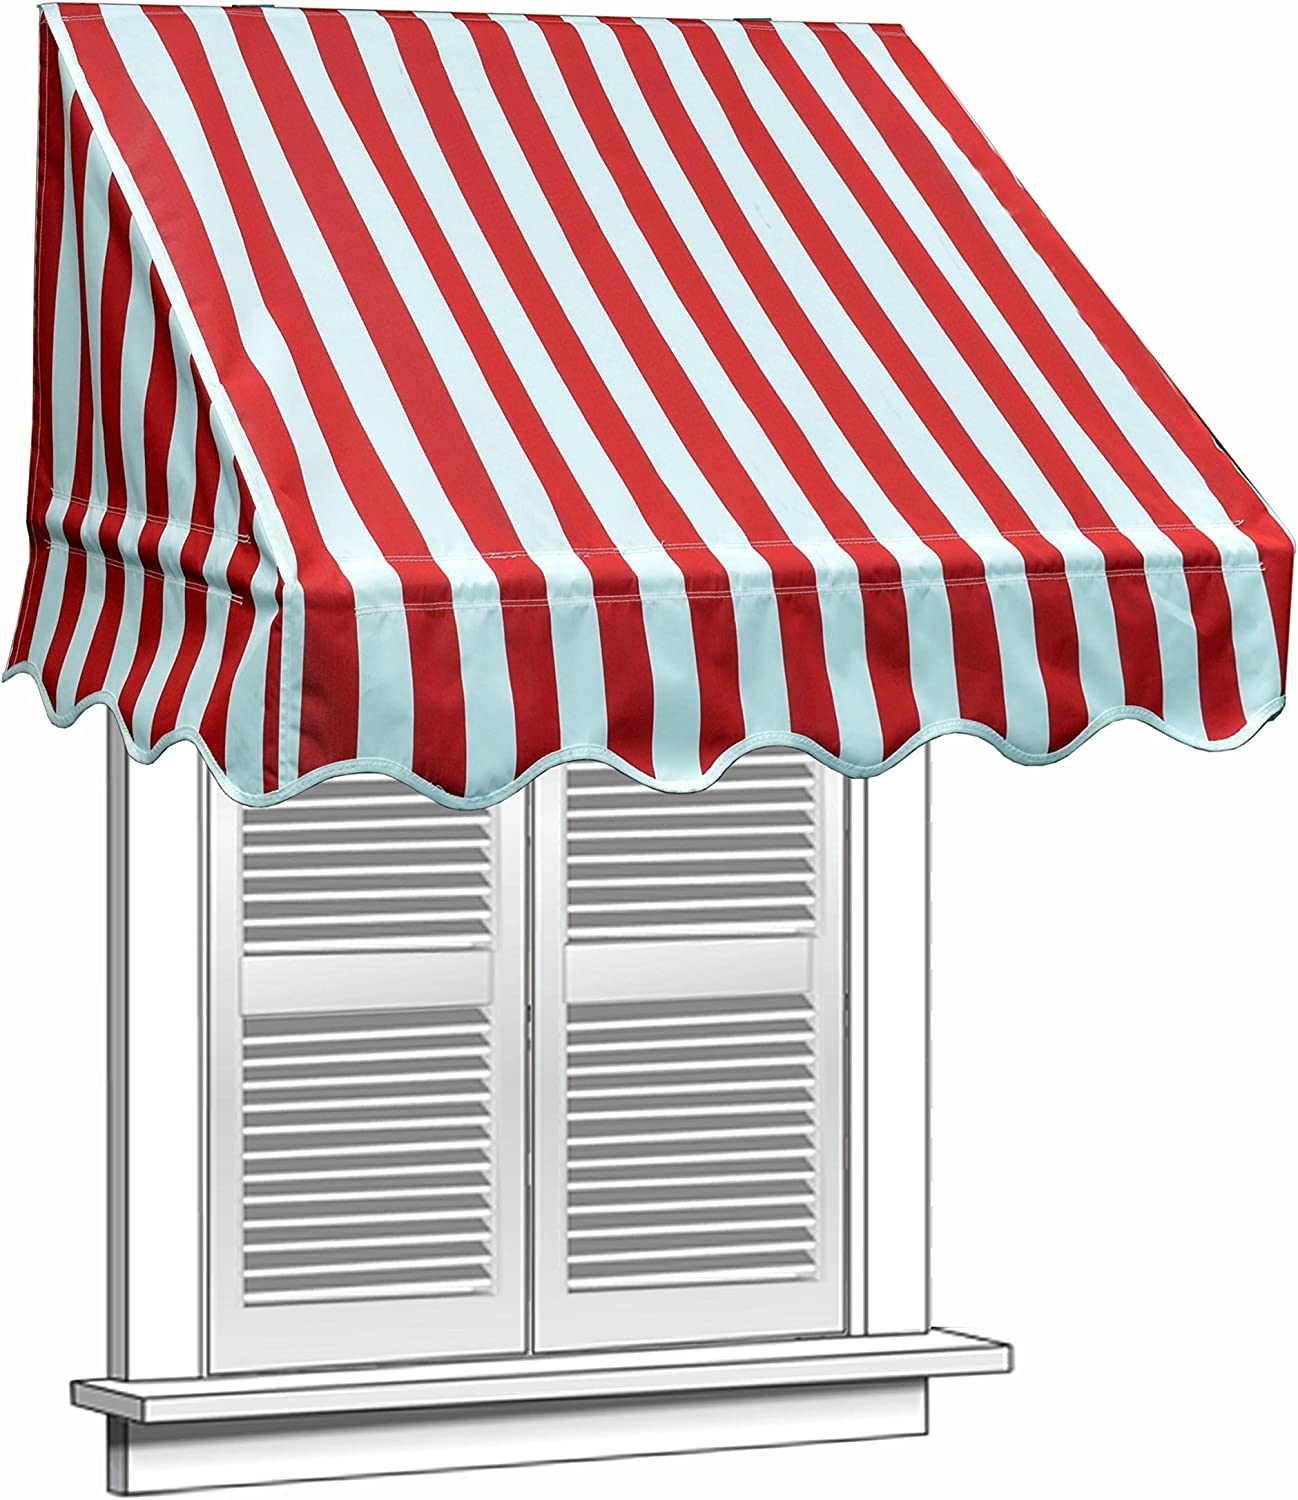 ALEKO 4x2 Feet Multiple Popularity Stripes Red Awning Window Door 4- Max 48% OFF Canopy